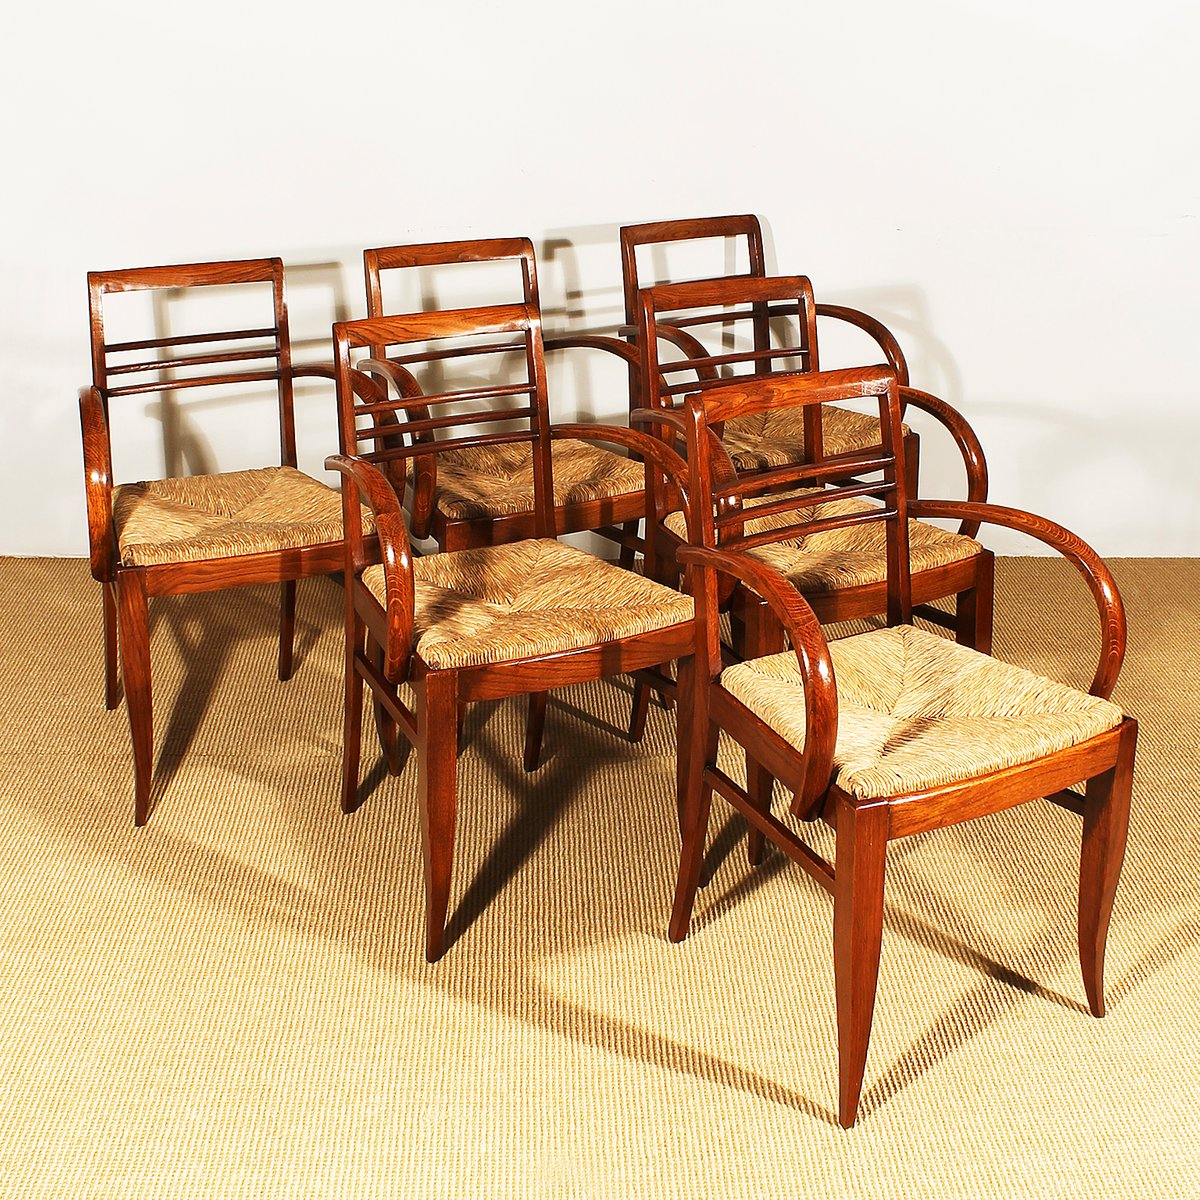 art deco bridge chairs in oak and straw 1930s set of 6 for sale at pamono